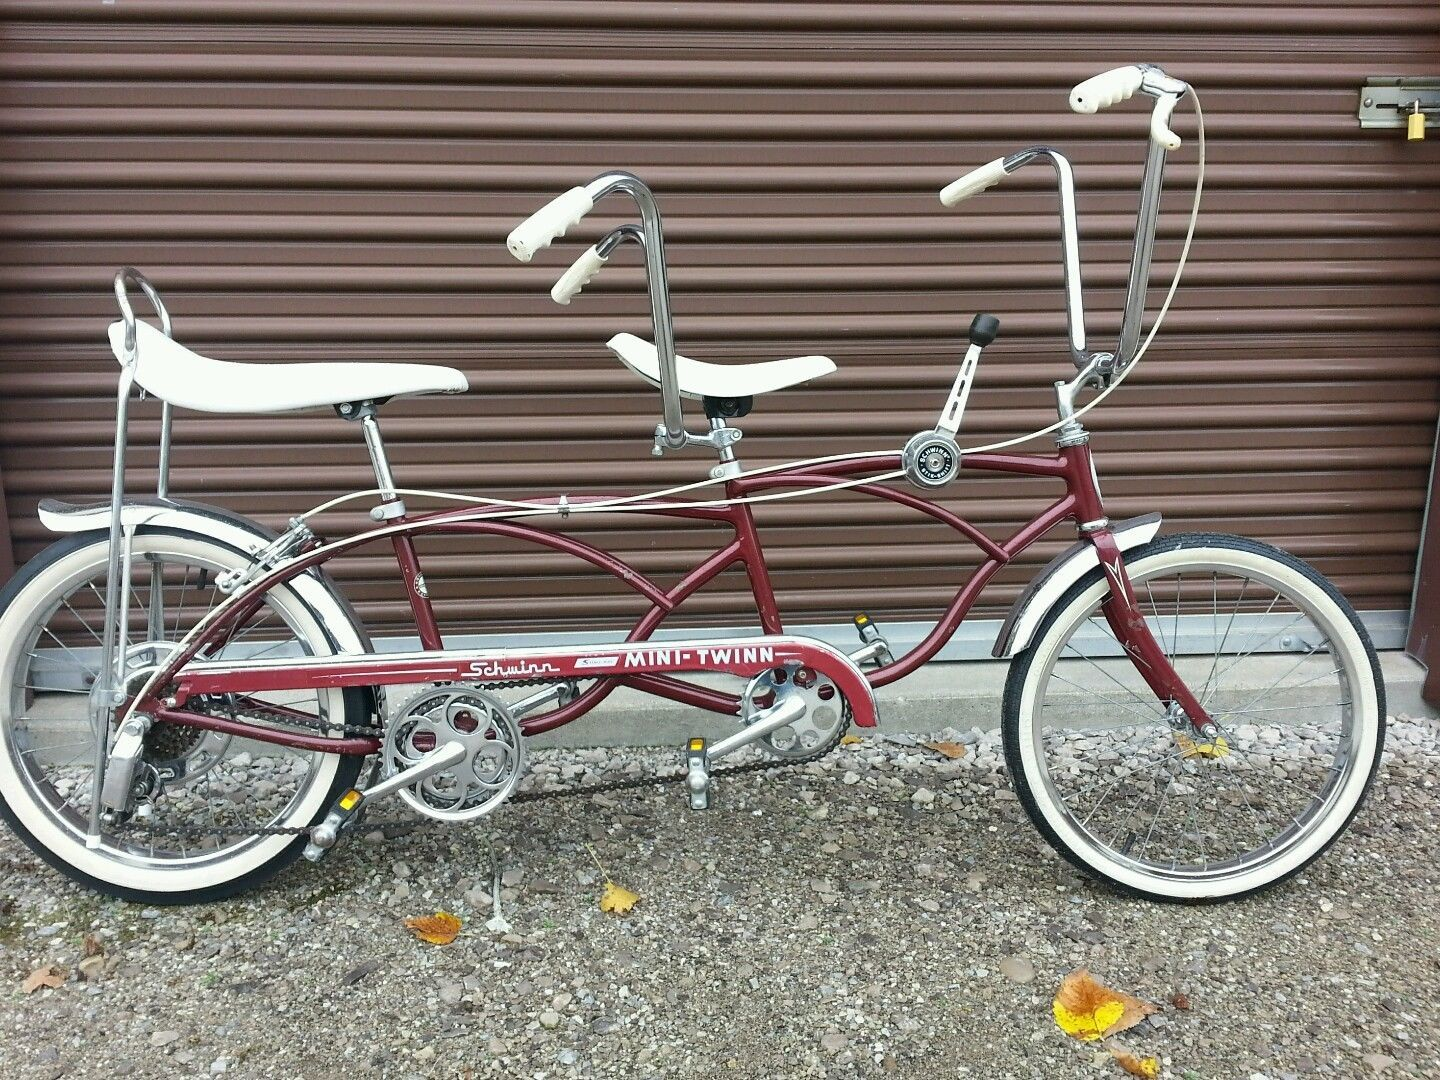 Arte Johnson On Bike Schwinn Mini Twin Bicycle Junkies Bicycle Lowrider Bike